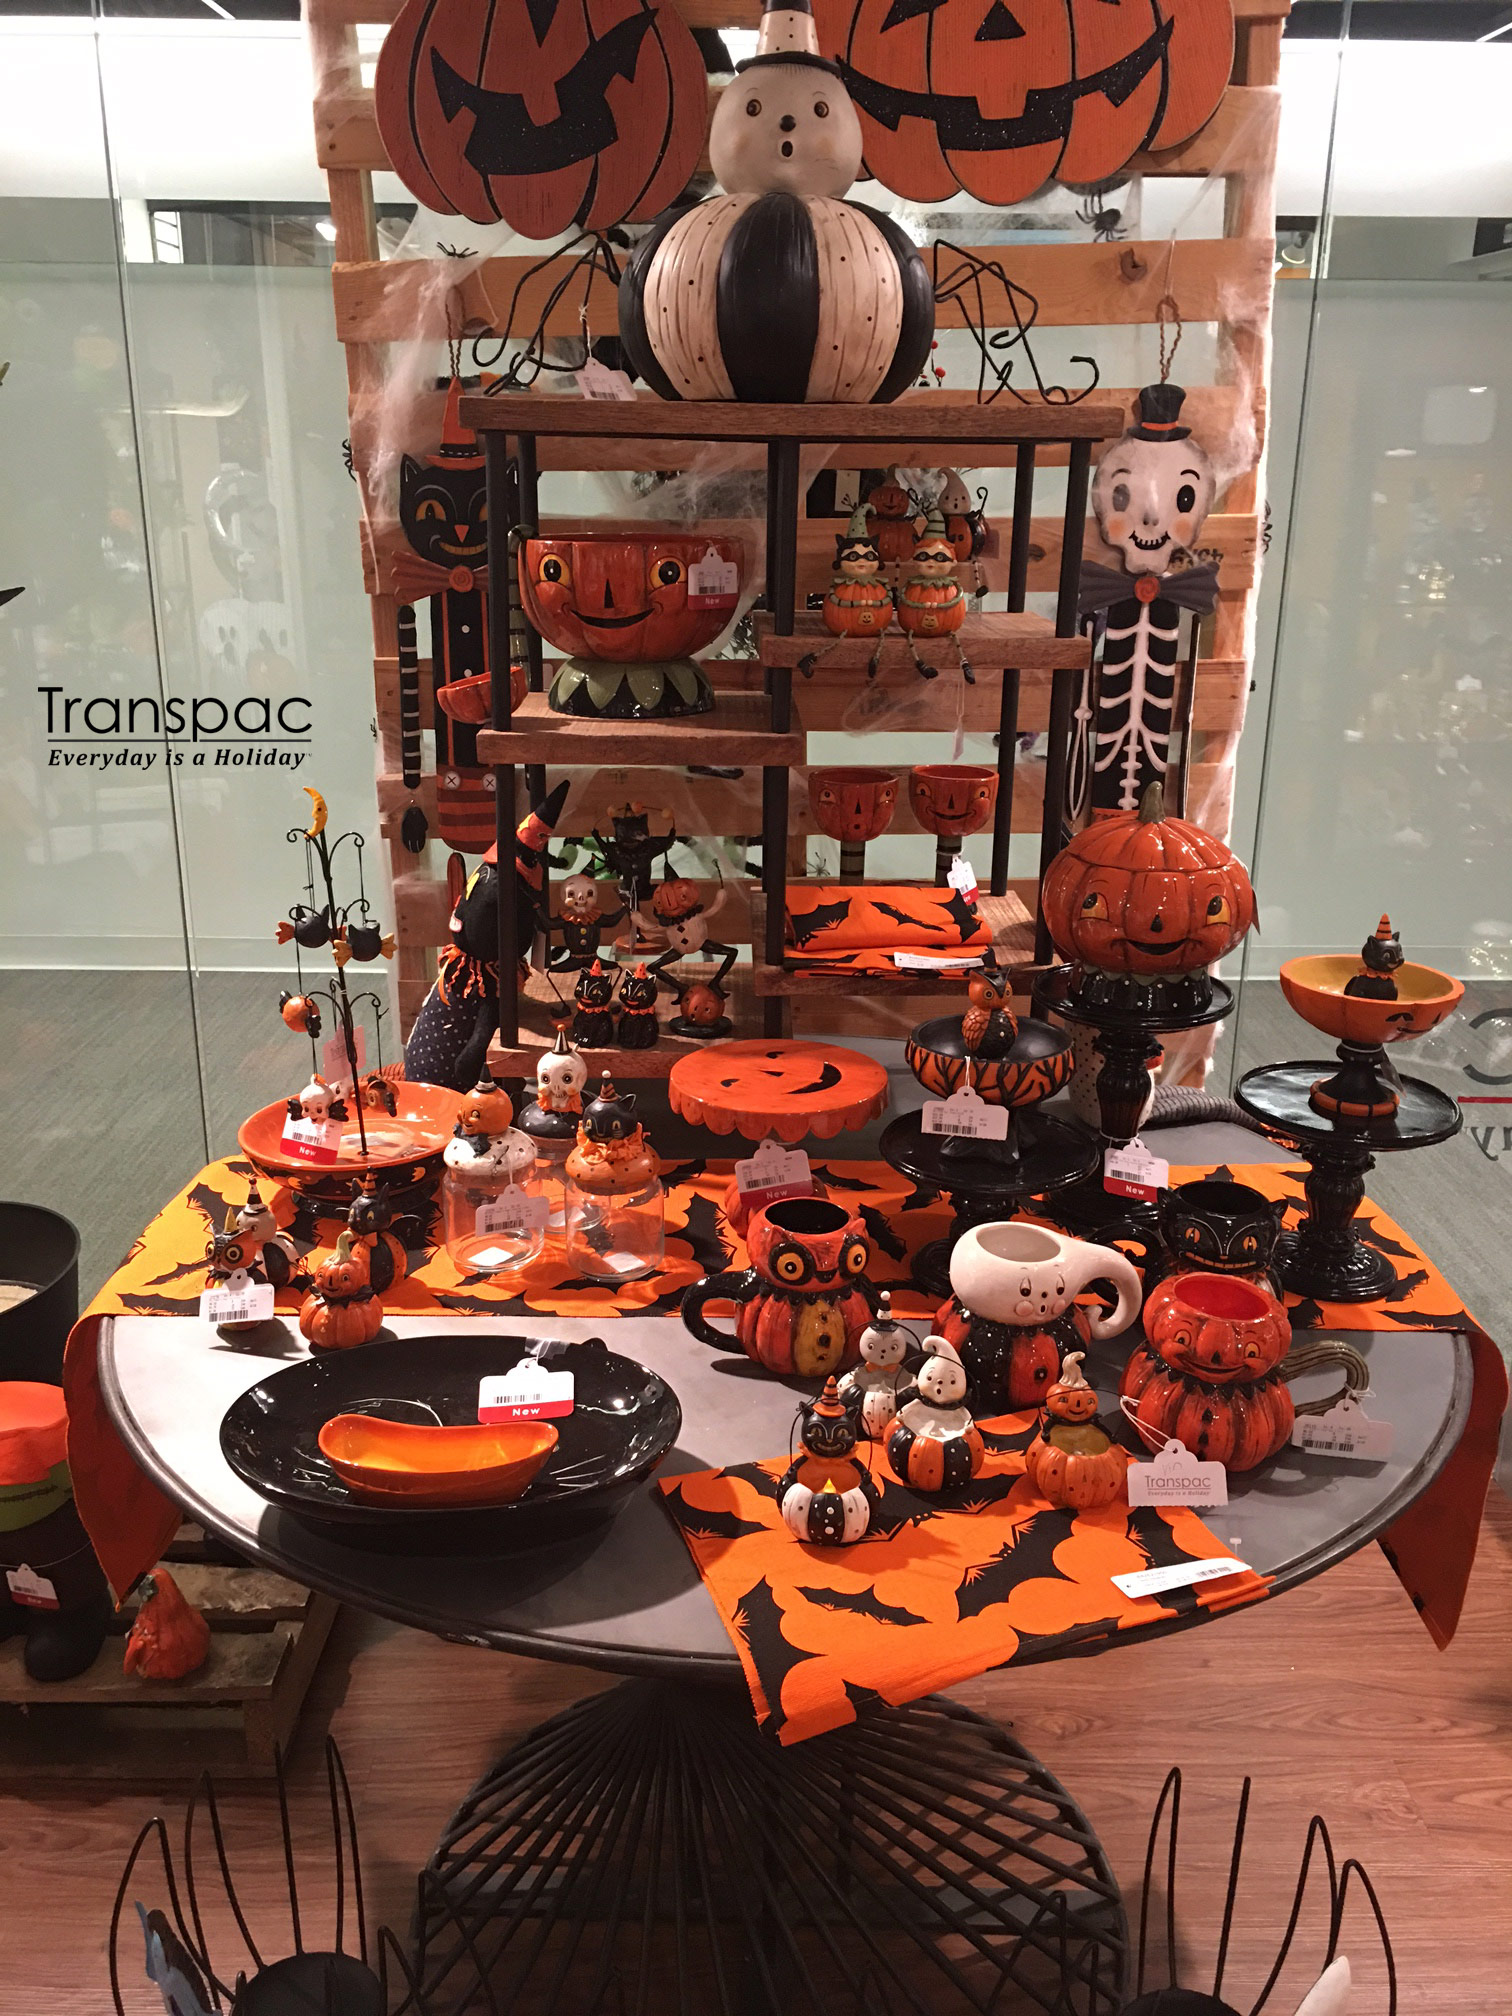 Quick snap from my January 2018 Halloween display in Transpac Import's Atlanta Showroom. I am not involved in this phase of the design process, so I cross my fingers that the displays will be eye-catching.The majority of the items grouped together here are my designs, minus the textiles and the large jack-o'-lanterns hovering over the scene. My Black Cat Mug is in the mix, albeit a bit tricky to see from this angle.